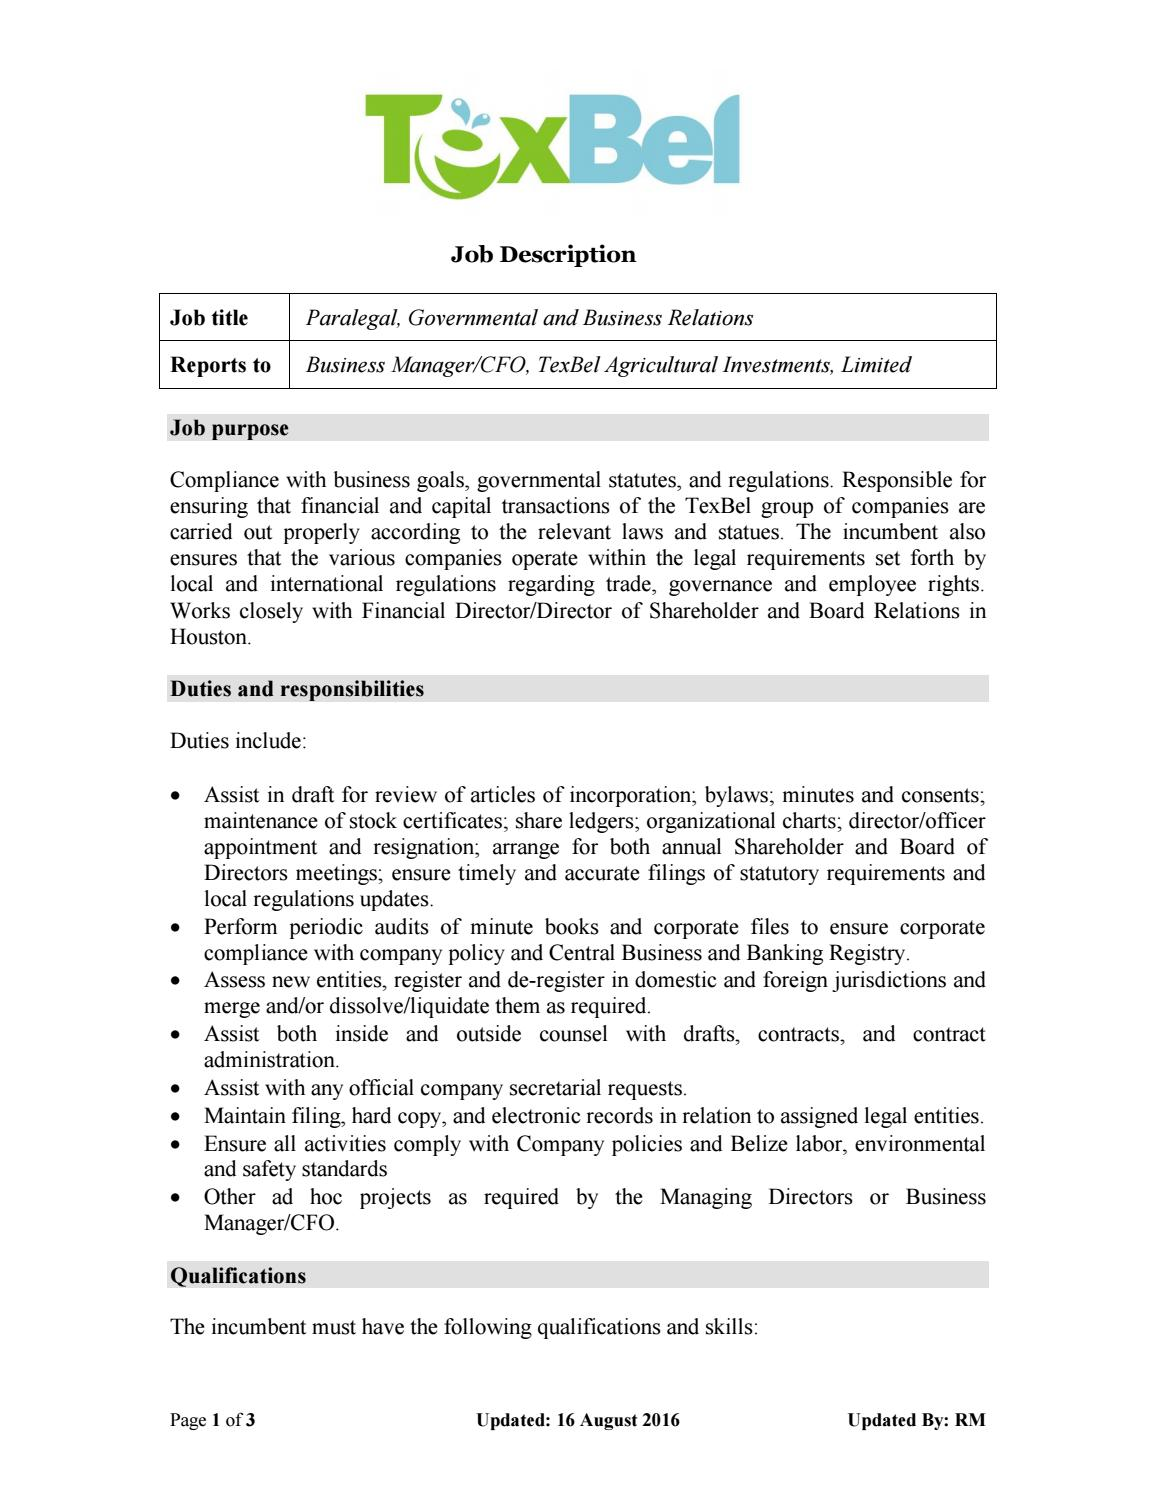 Job Description - Paralegal (TexBel) by Beltraide - issuu